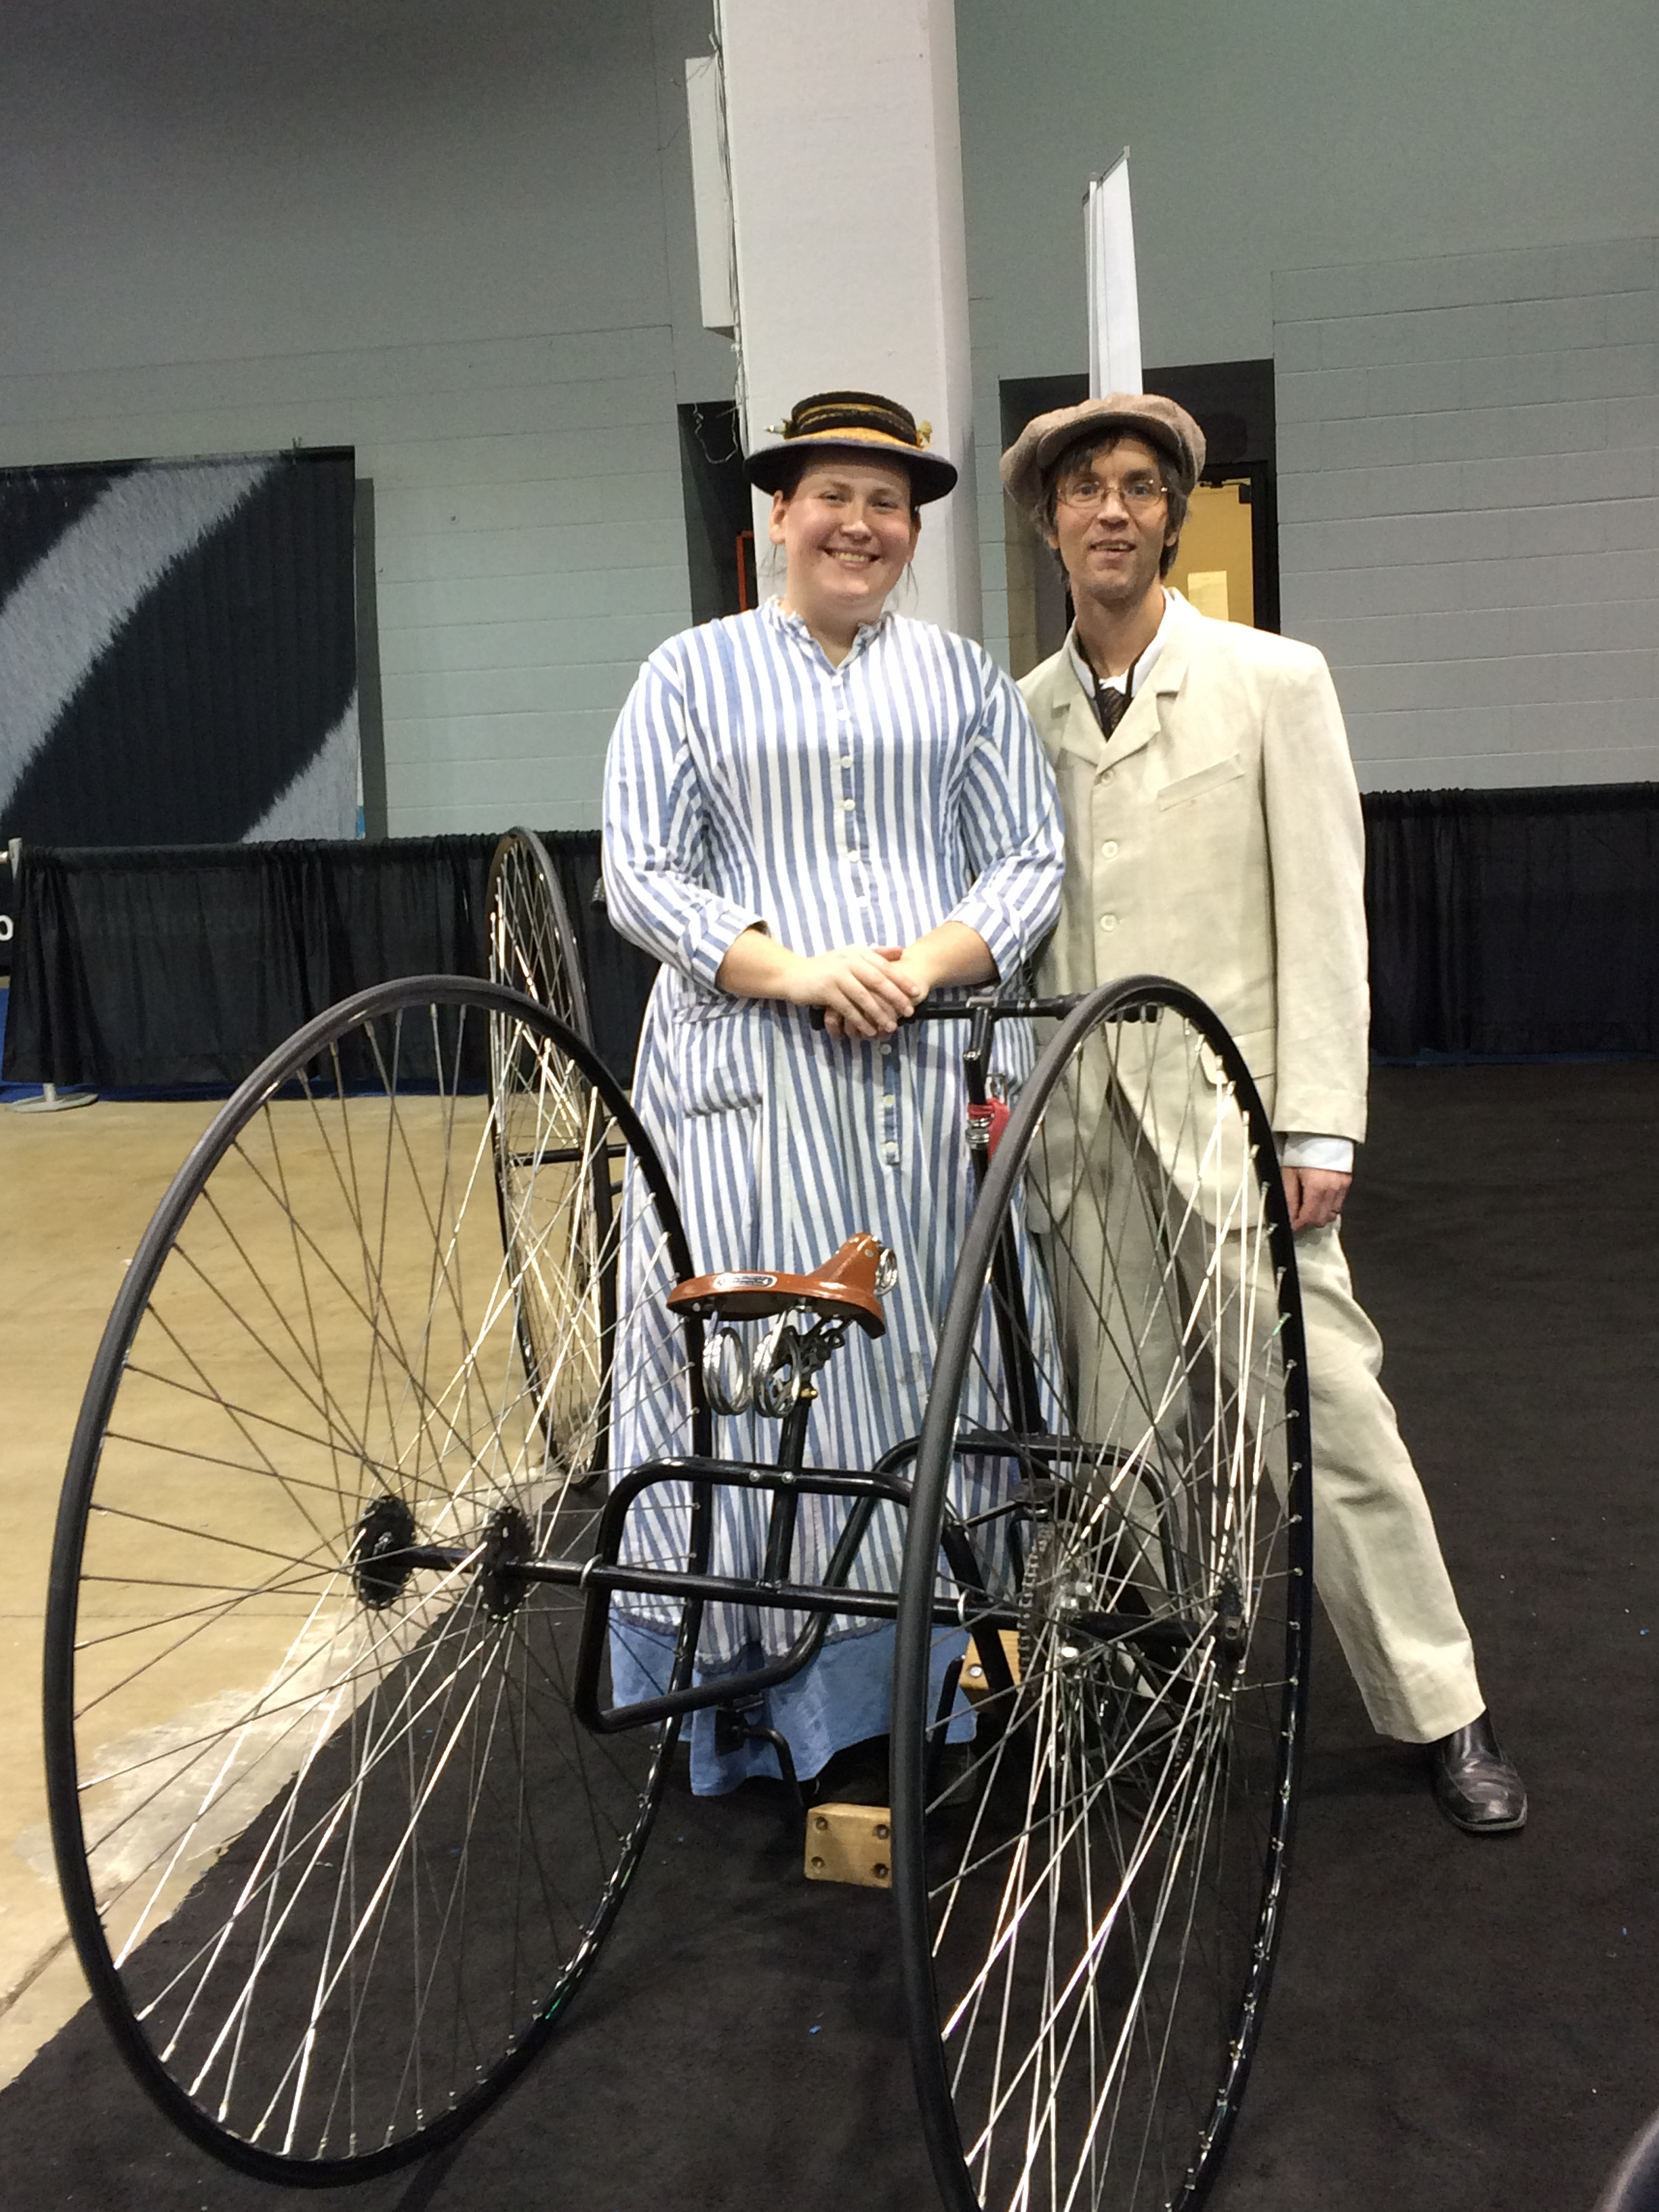 Old World Wisconsin invited attendees to take a spin on an old-timey tricycle.